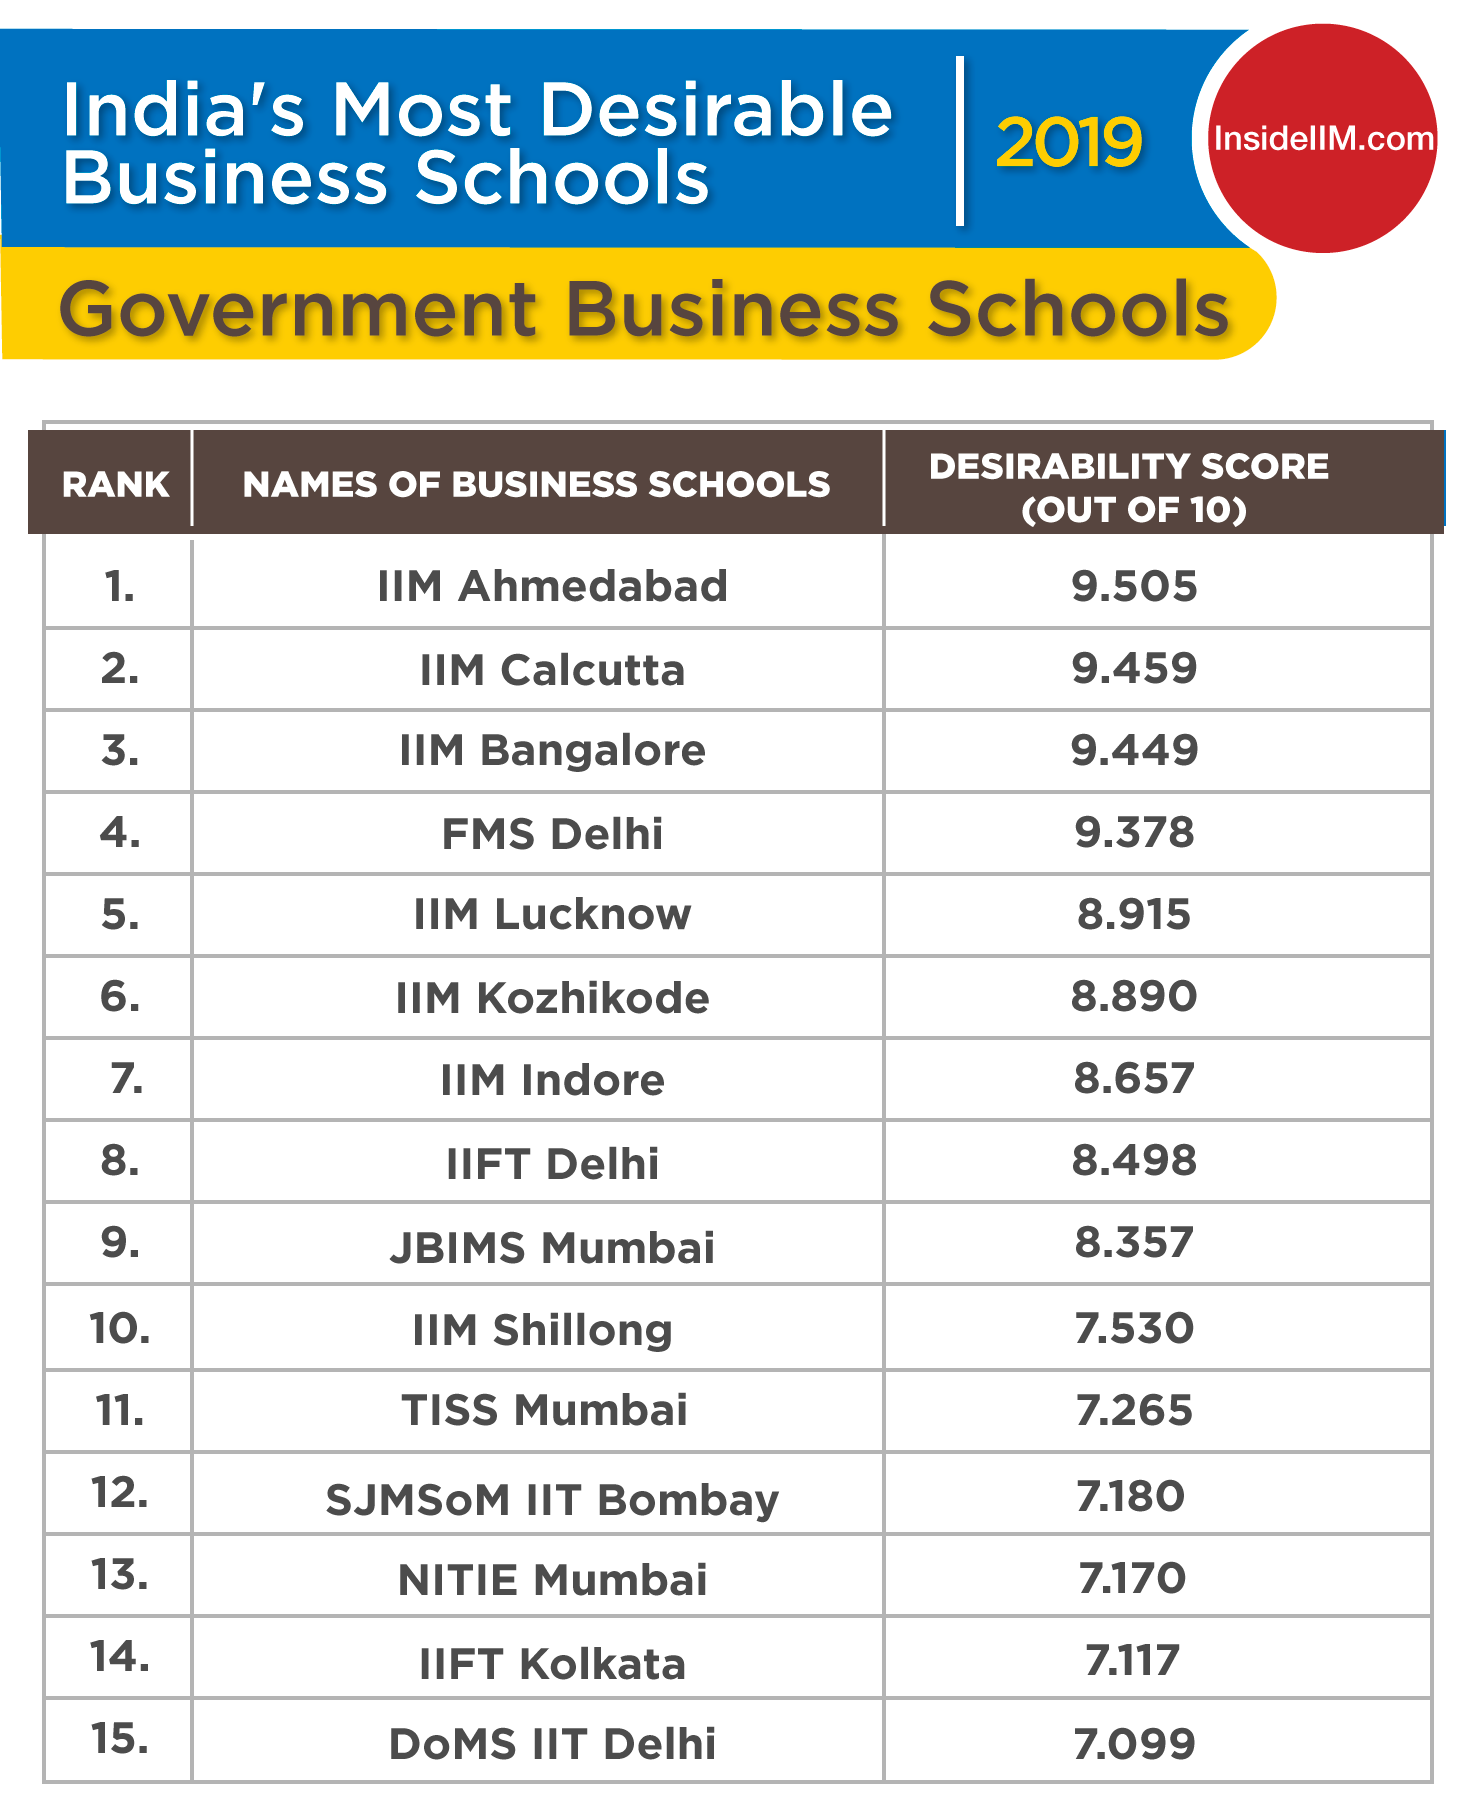 Top MBA Colleges in India 2019 - Ownership: Government